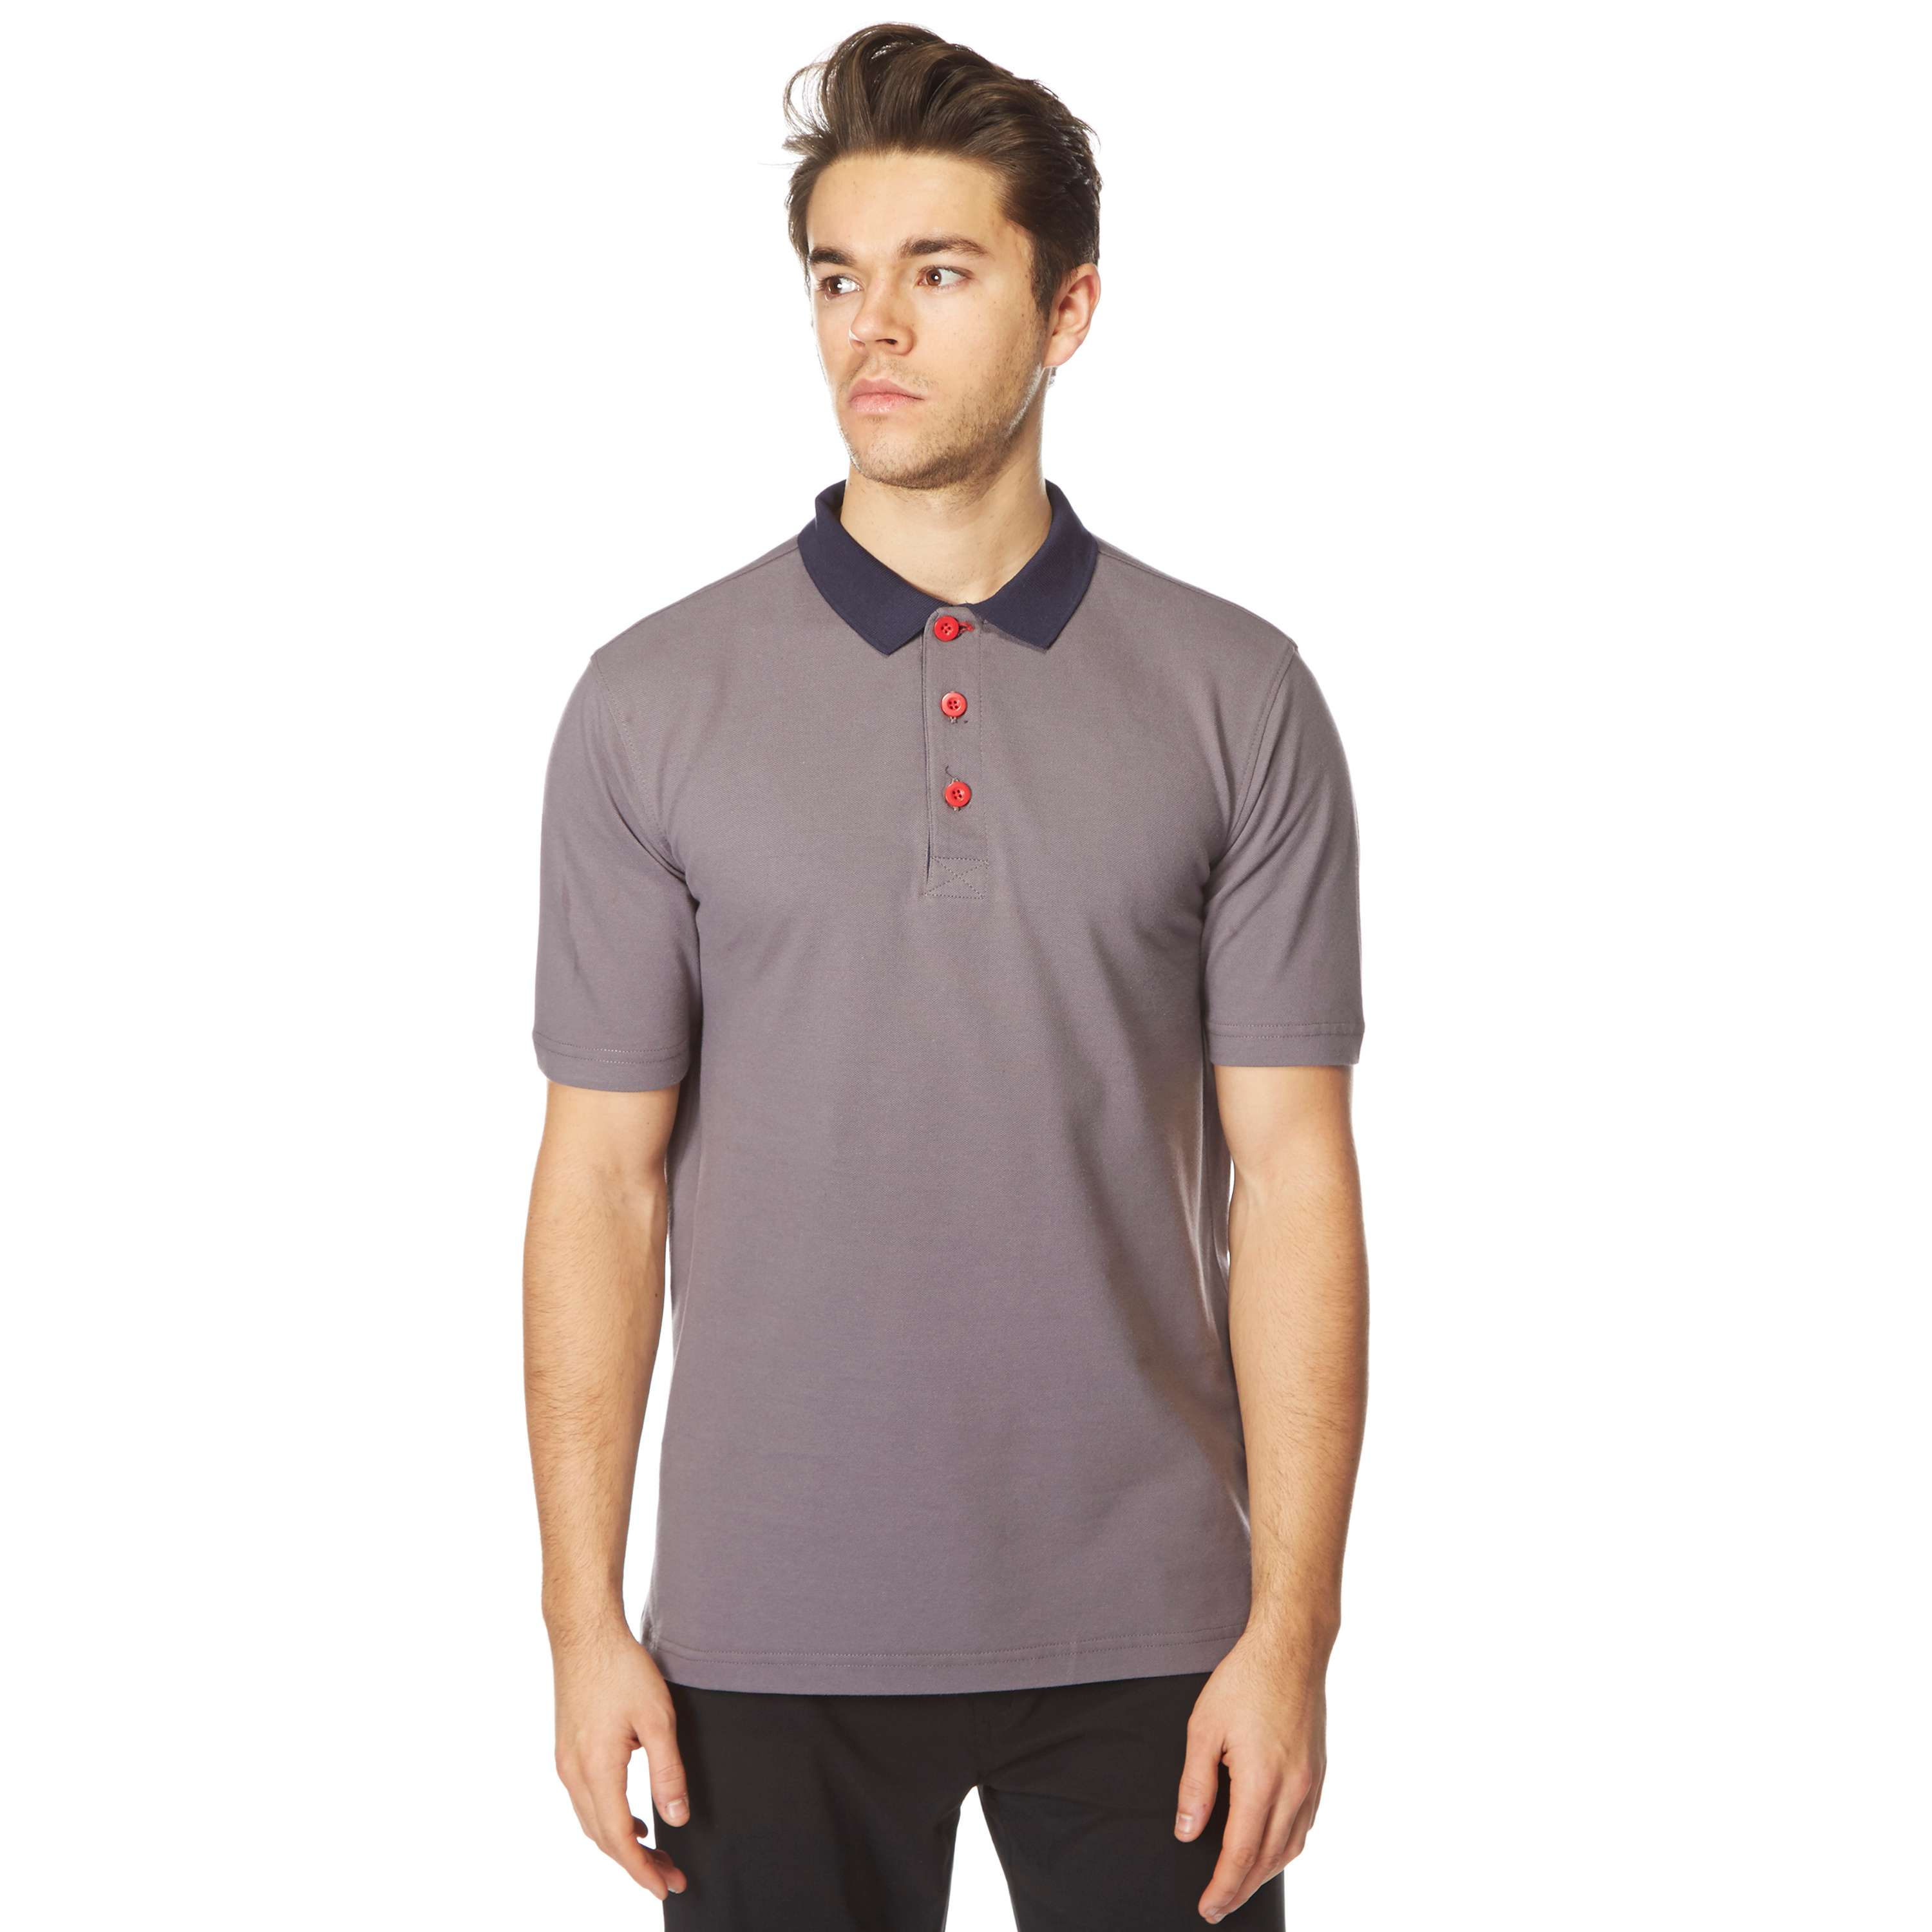 ONE EARTH Men's George Polo Shirt